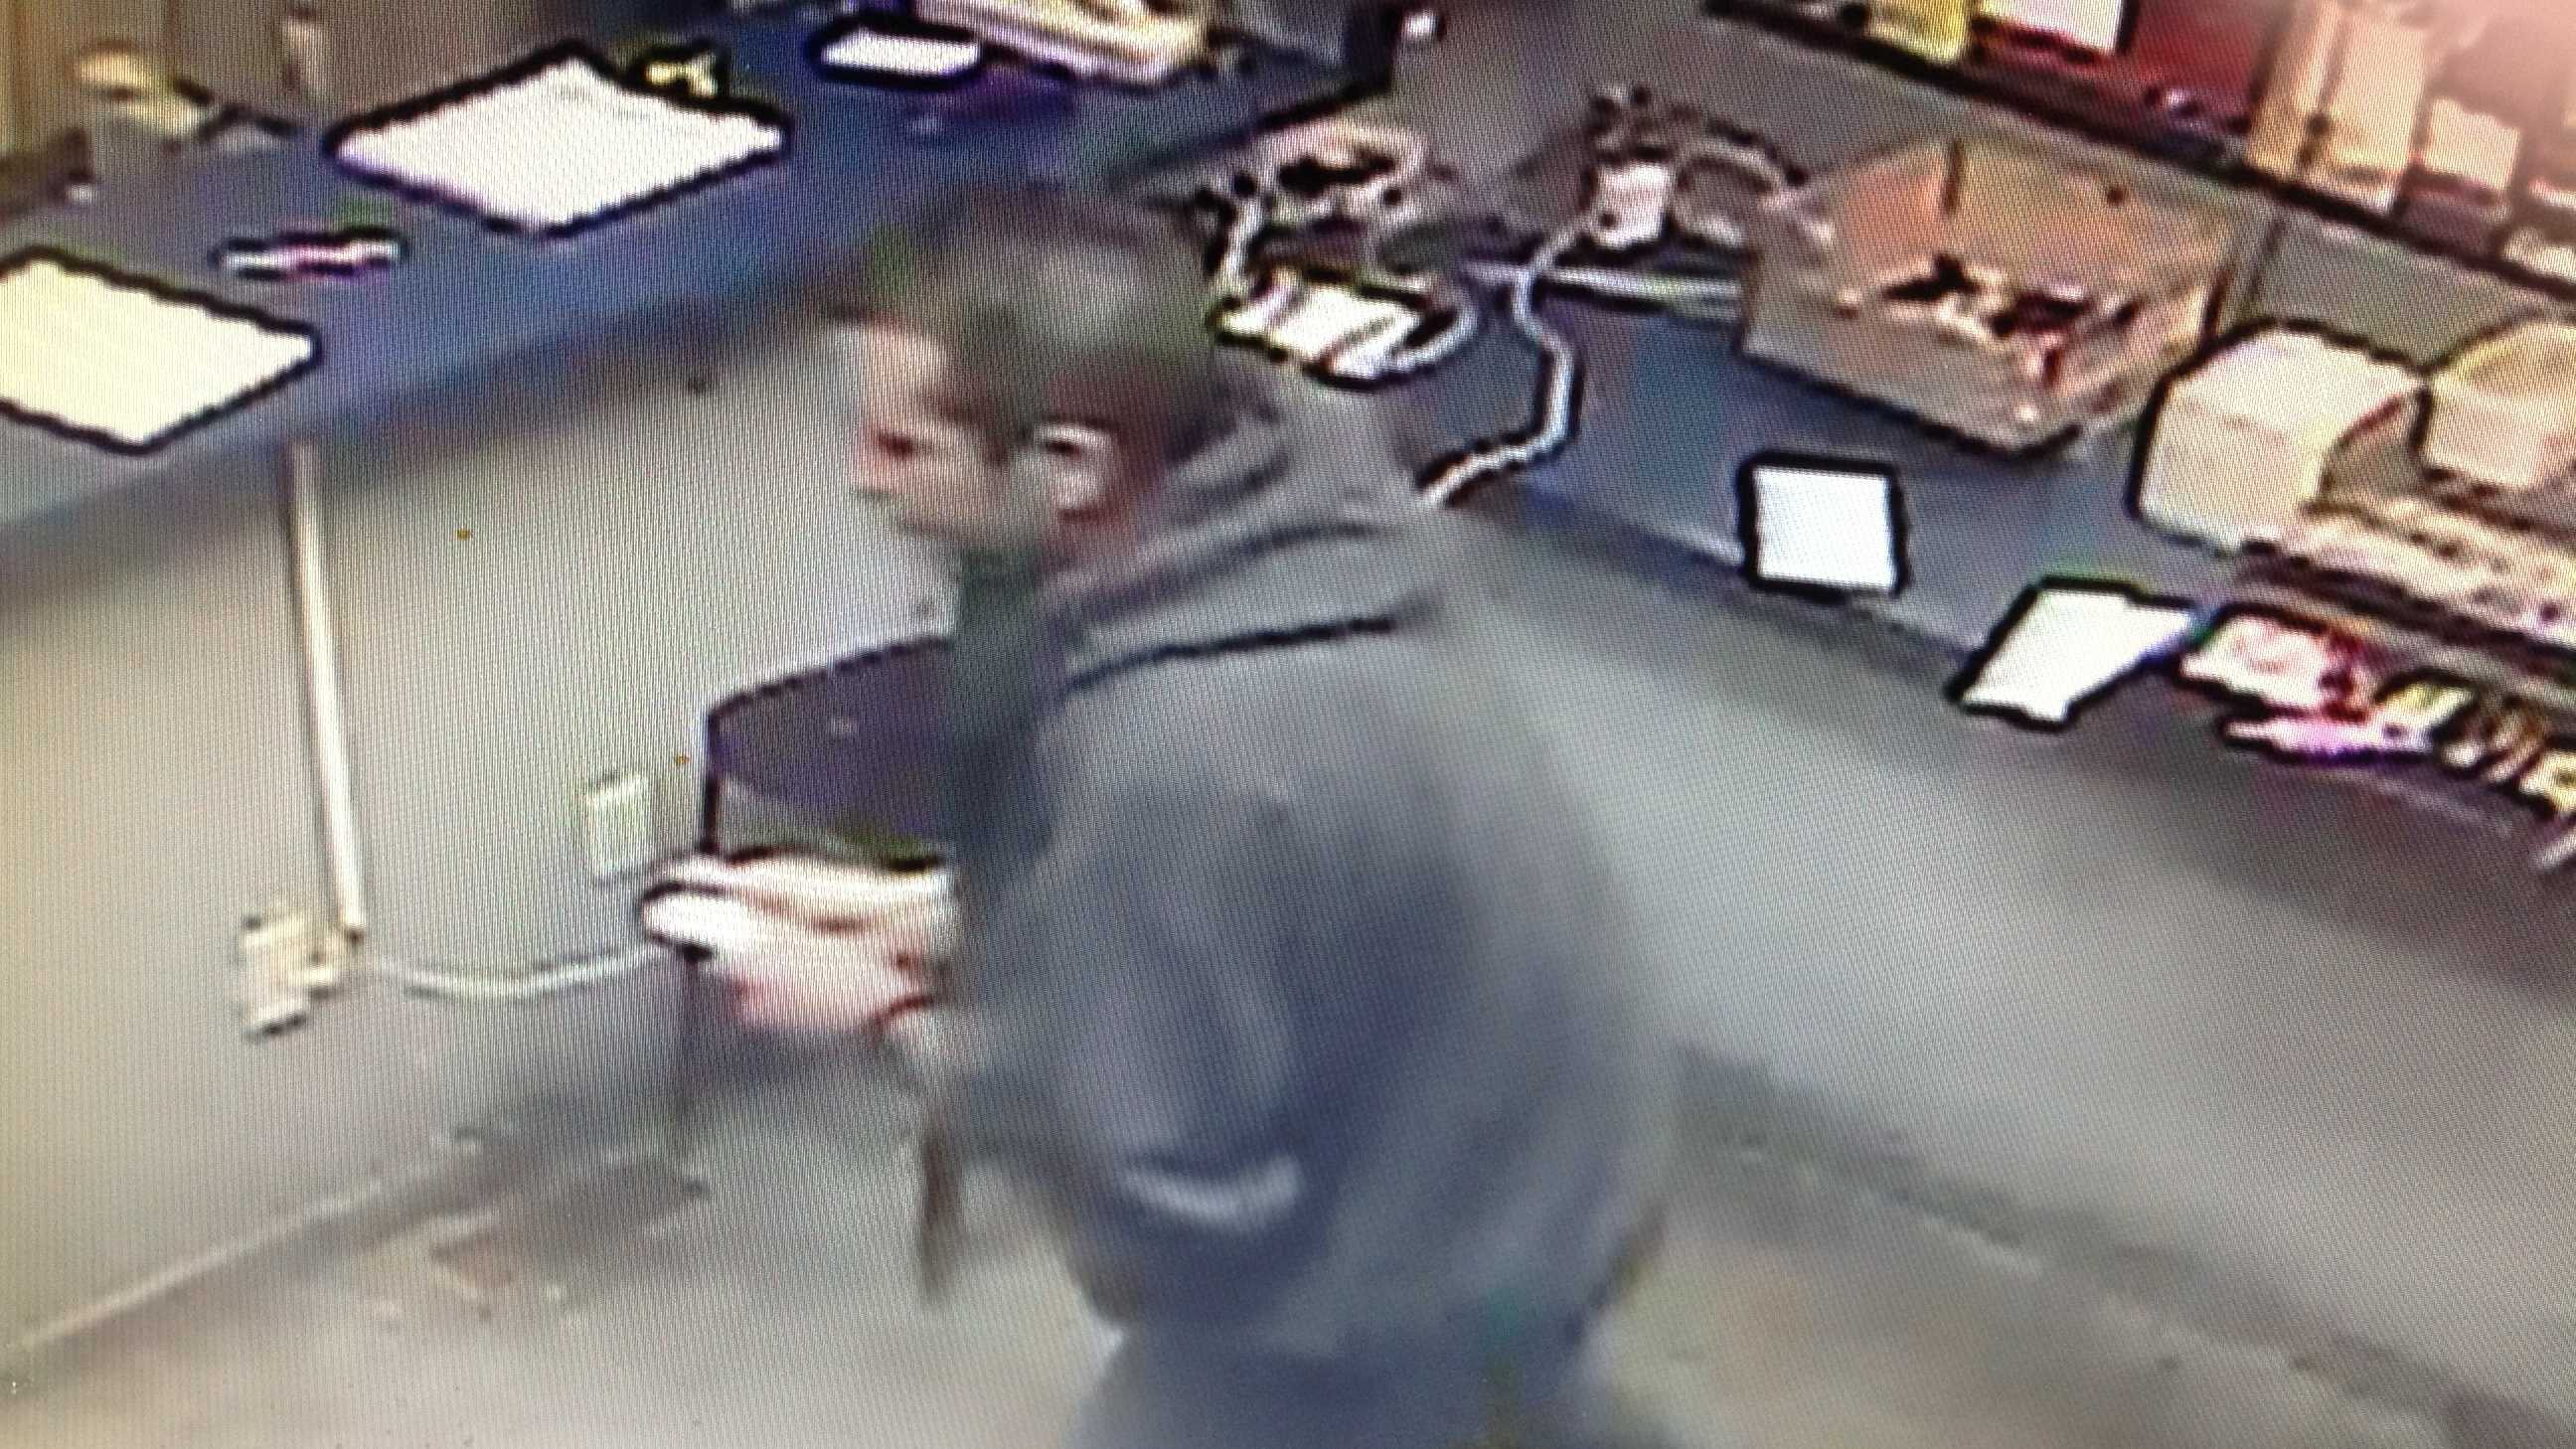 Lowell suspect robbery